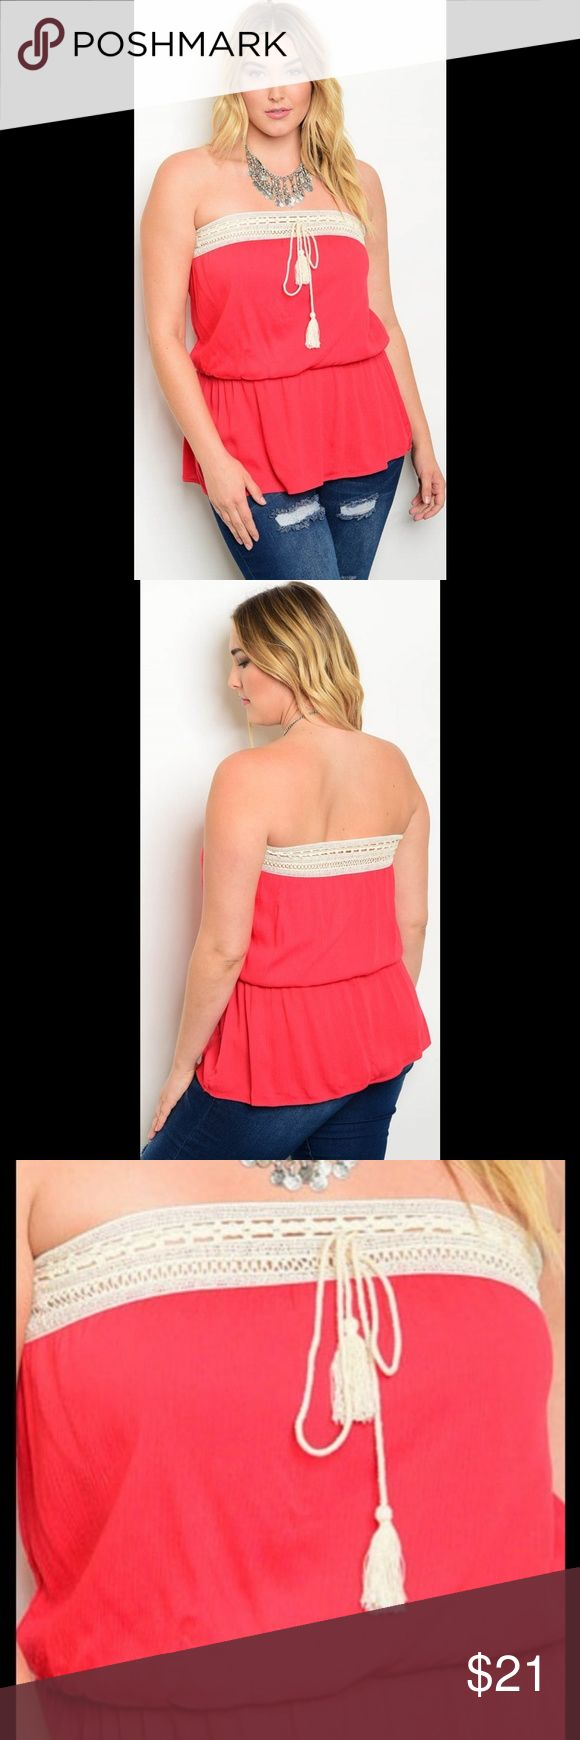 ✴~candyce~ top/ruby red✴plus size ✴this delightful tube top with a smock waist and delicate crochet detail will flatter your shape and steal hearts this summer!  ✴a wardrobe staple that will pair perfectly with a cute pair of shorts or capris and also dress up your favorite skirt and heels!!! ✴80% polyester/20% cotton ✴hand wash  price firm unless bundled no trades no holds Janette Plus Tops